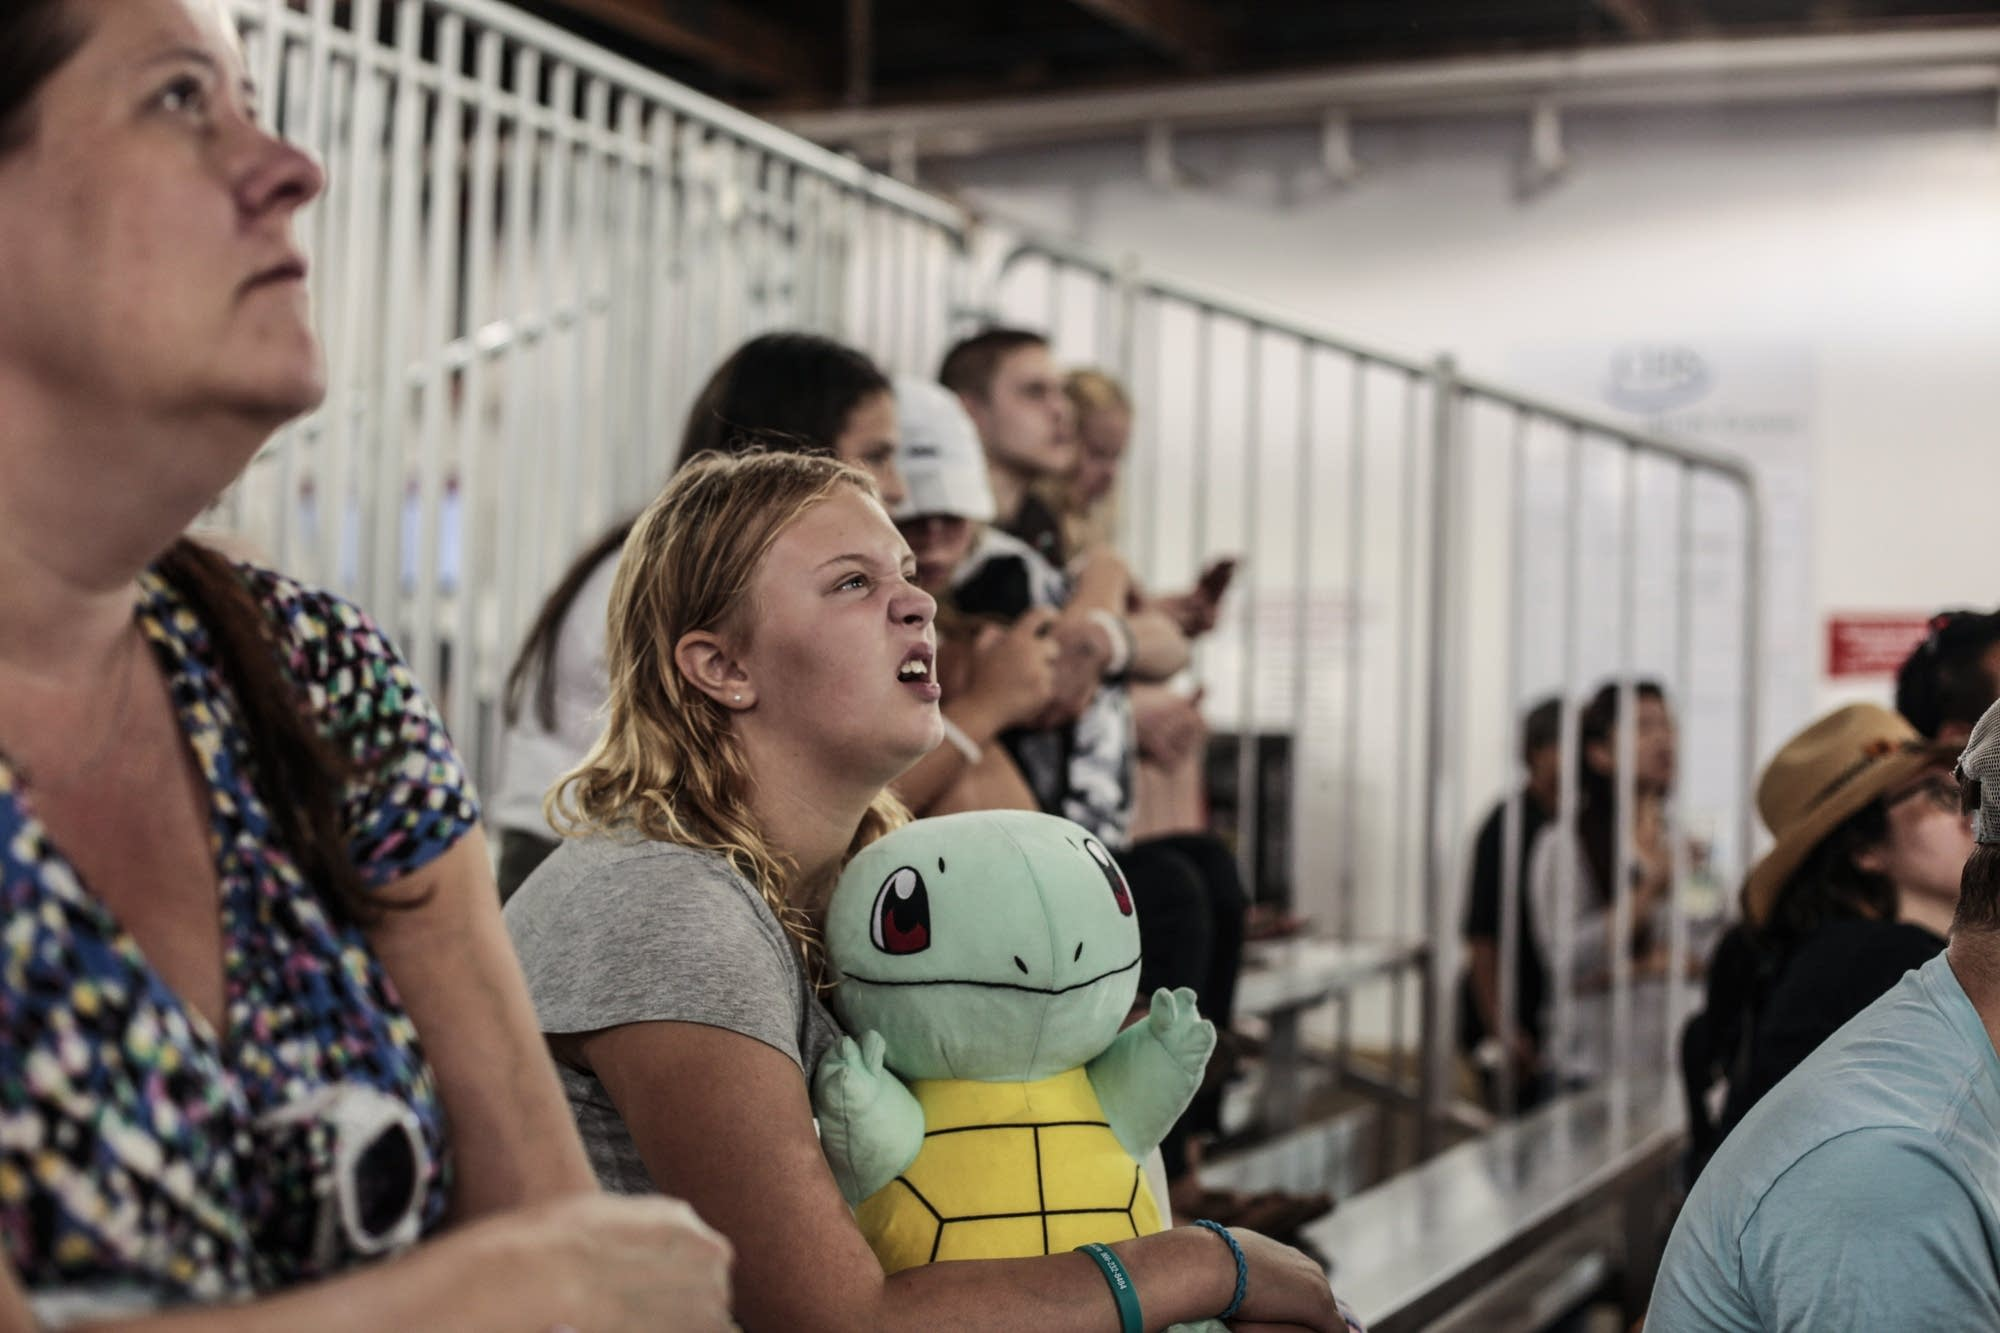 A girl holding a Squirtle pokemon doll watches the miracle of birth videos.